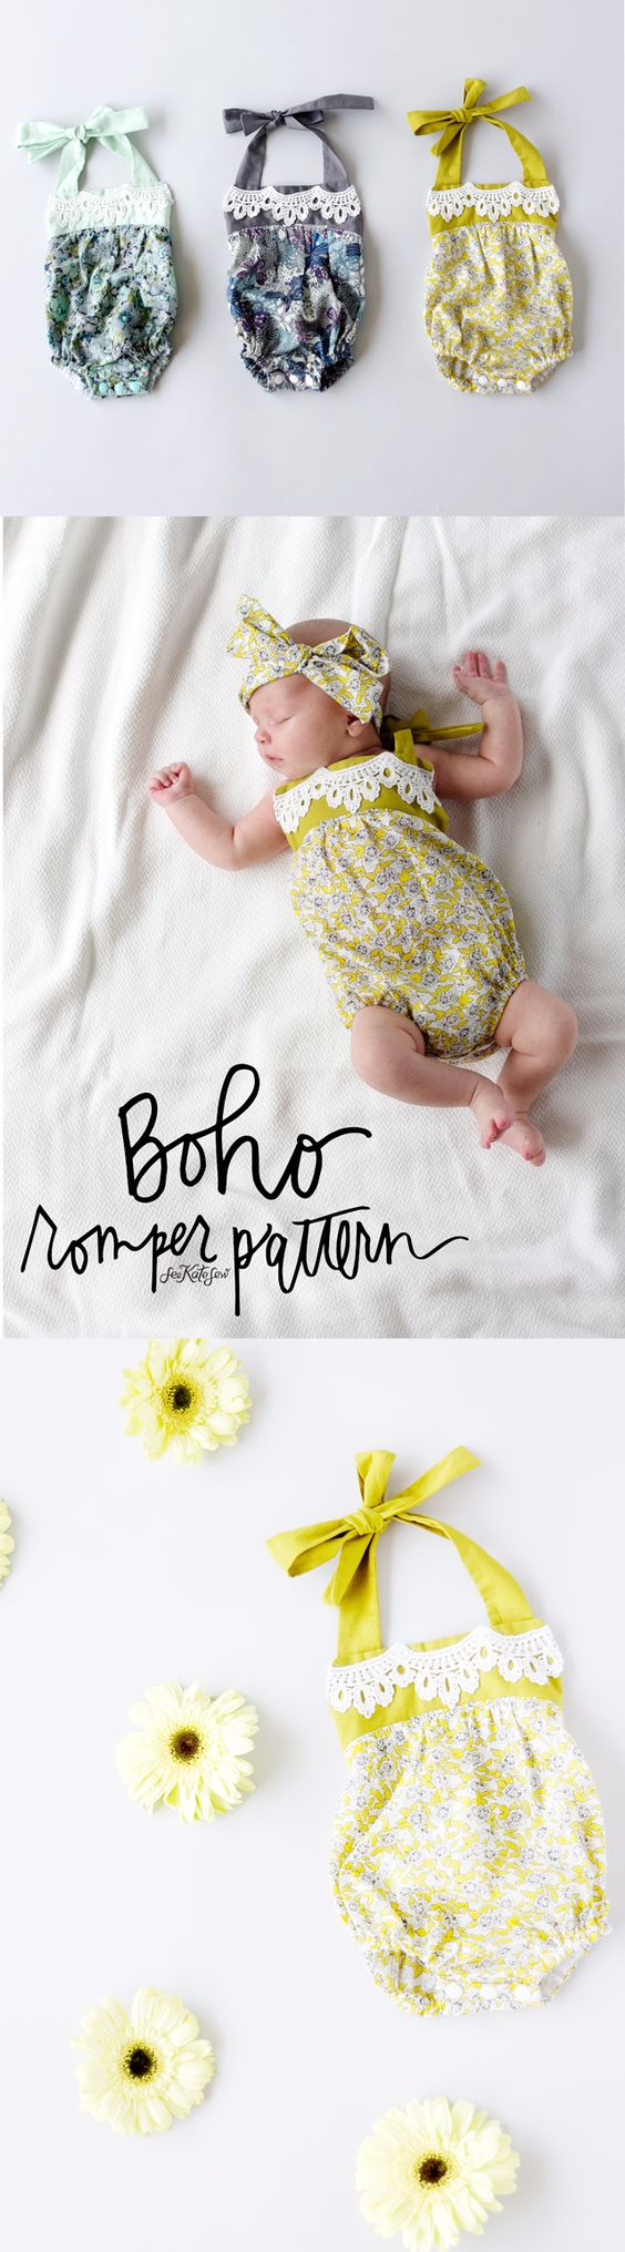 51 Things to Sew for Baby - Boho Baby Romper - Cool Gifts For Baby, Easy Things To Sew And Sell, Quick Things To Sew For Baby, Easy Baby Sewing Projects For Beginners, Baby Items To Sew And Sell #baby #diy #diygifts